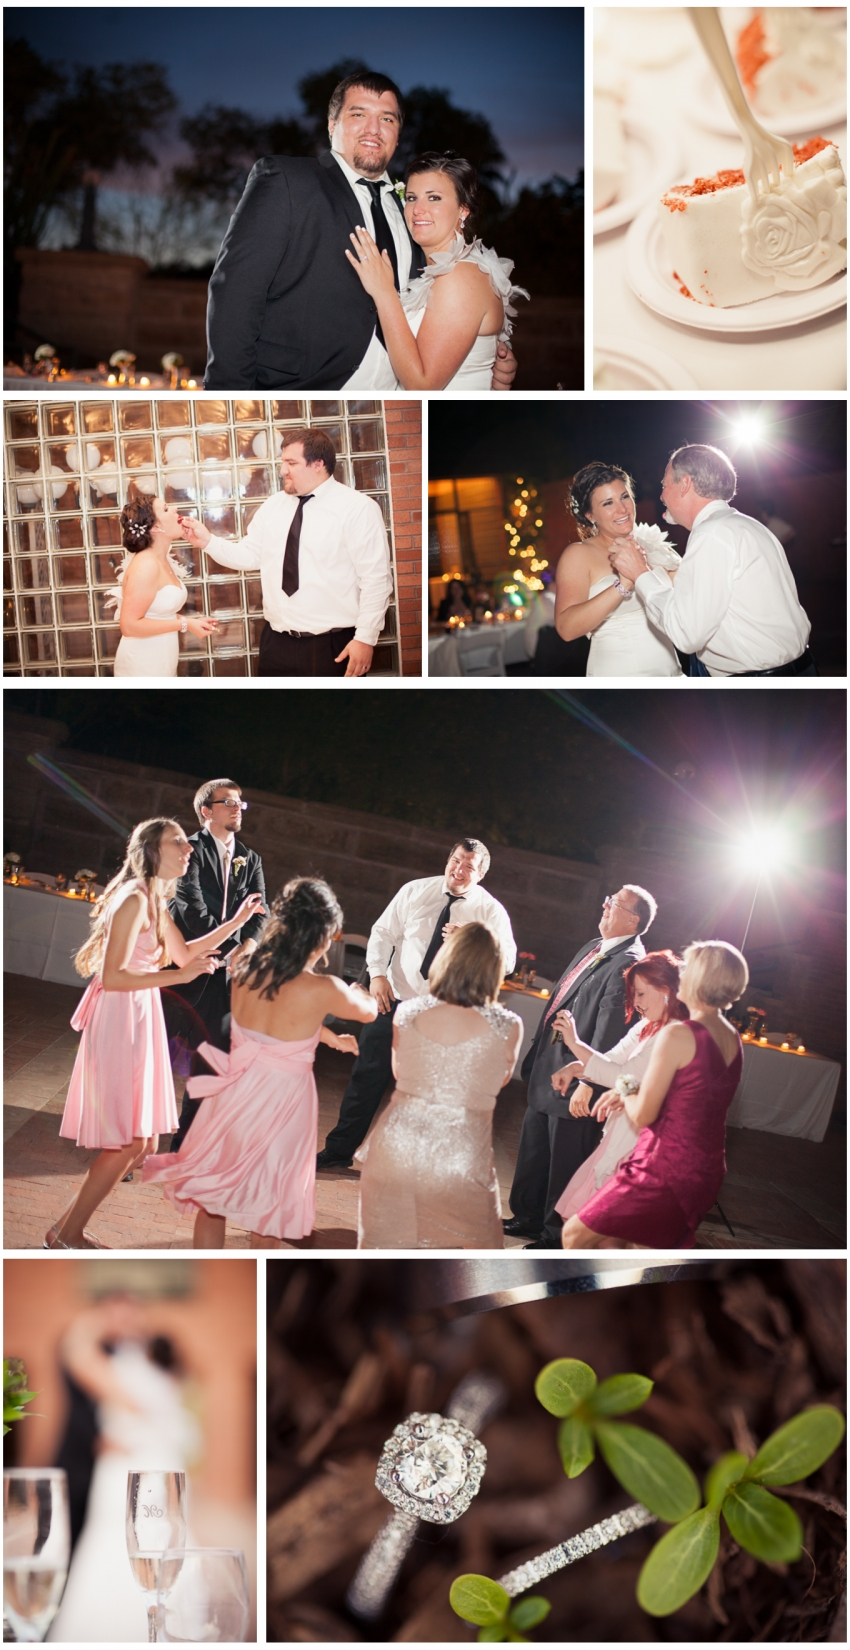 Brian + Nicole Wedding Photos - Tempe Wedding Photographer